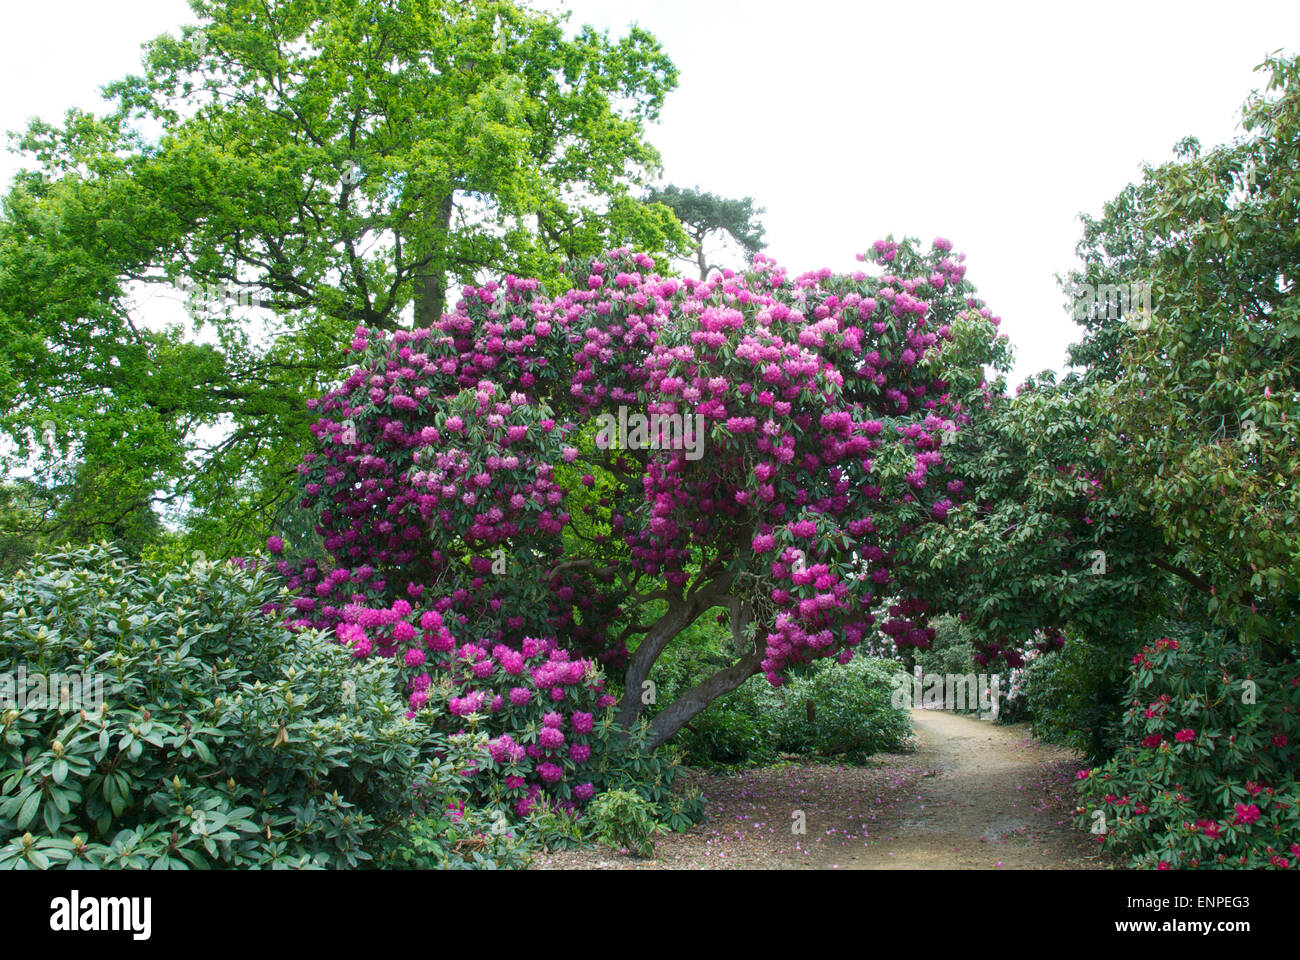 Superb azaleas and rhododendrons at the Langley Country Park, Buckinghamshire - Stock Image